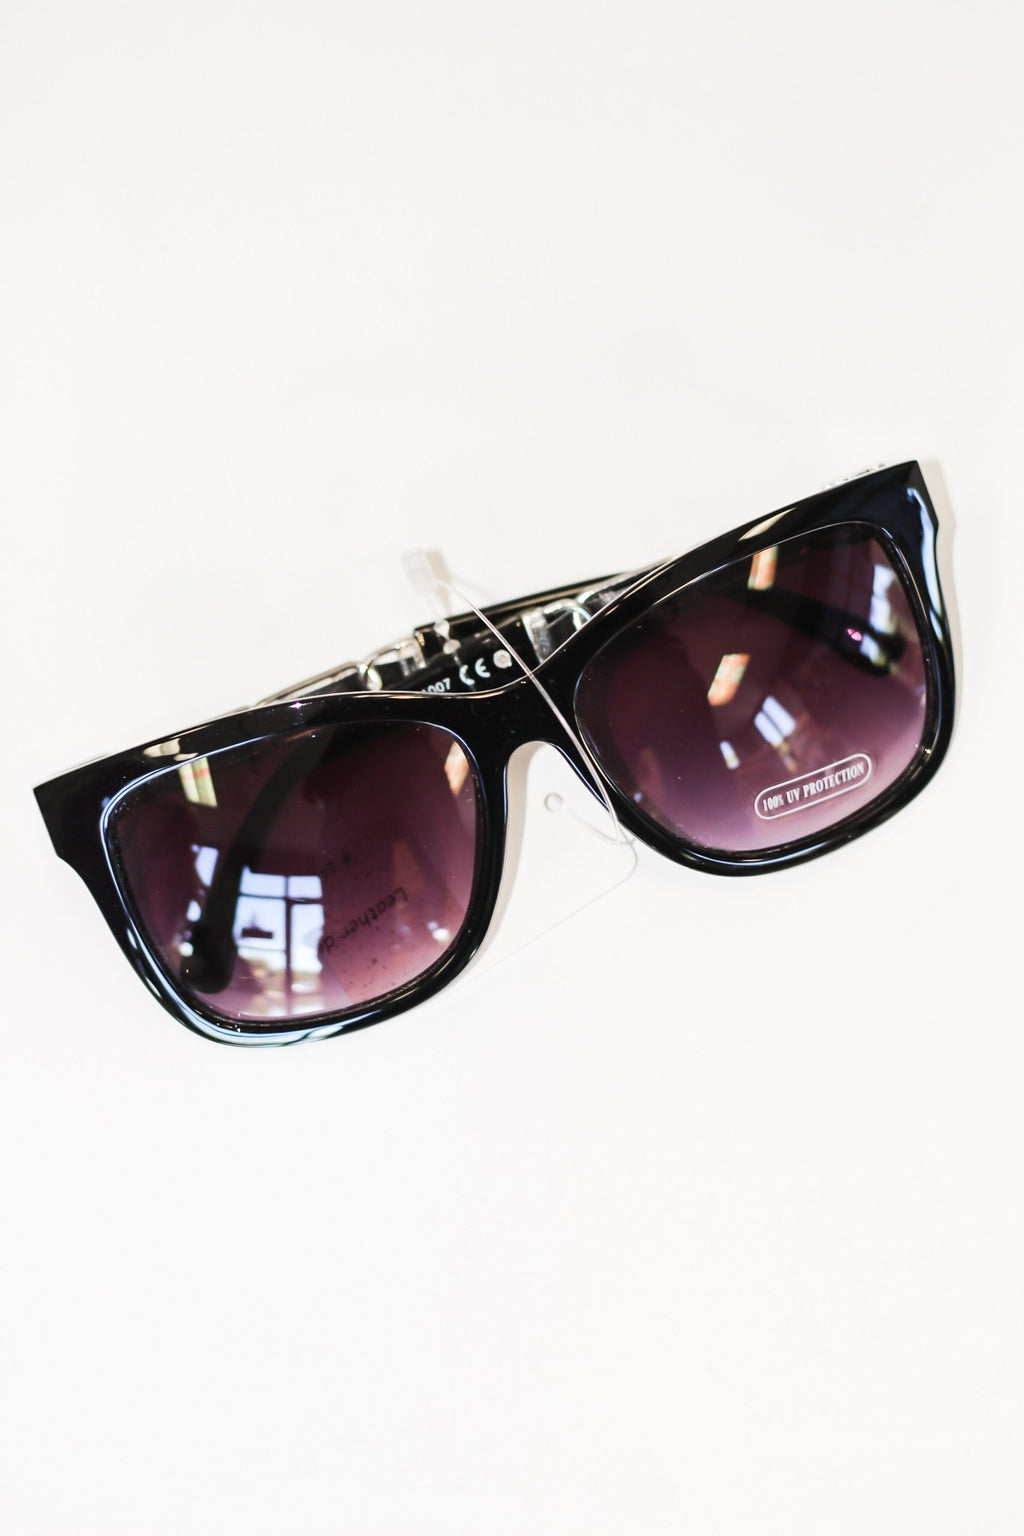 Classic Square Sunglasses With Leather Detailing - Hollie's Boutique